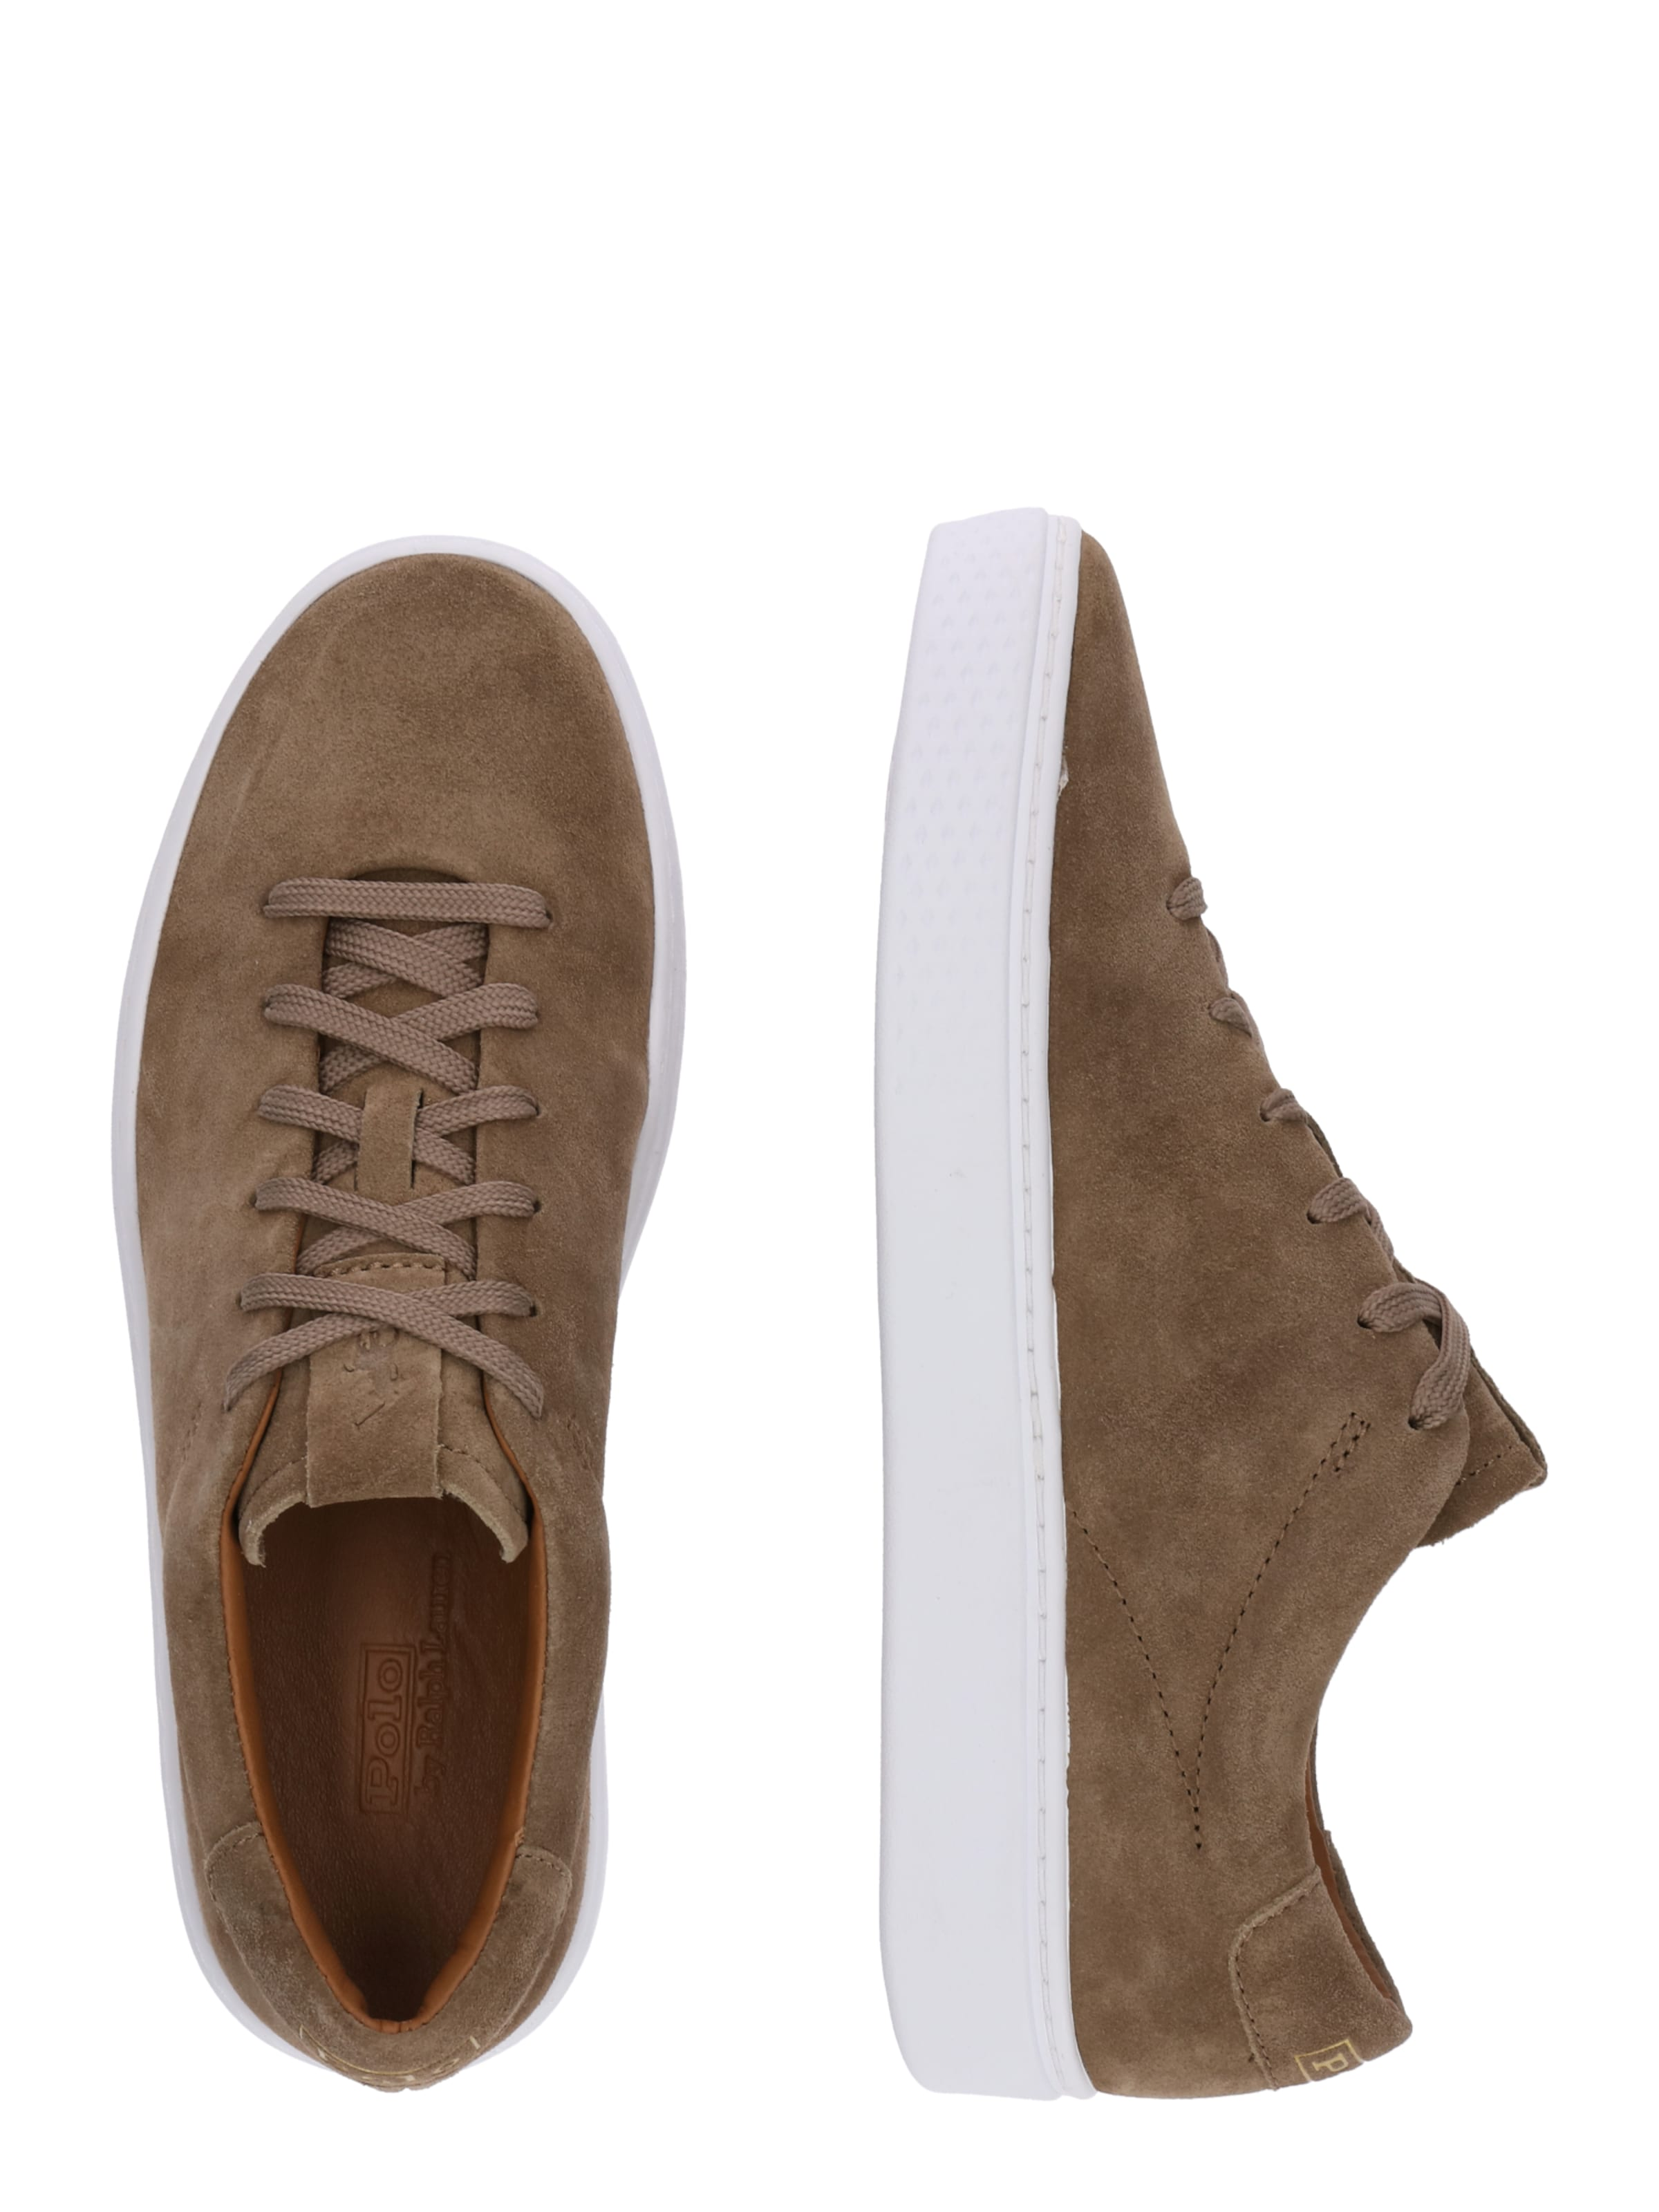 125' Laag Ralph In Sneakers 'court Lauren Taupe Polo IbgyY6vf7